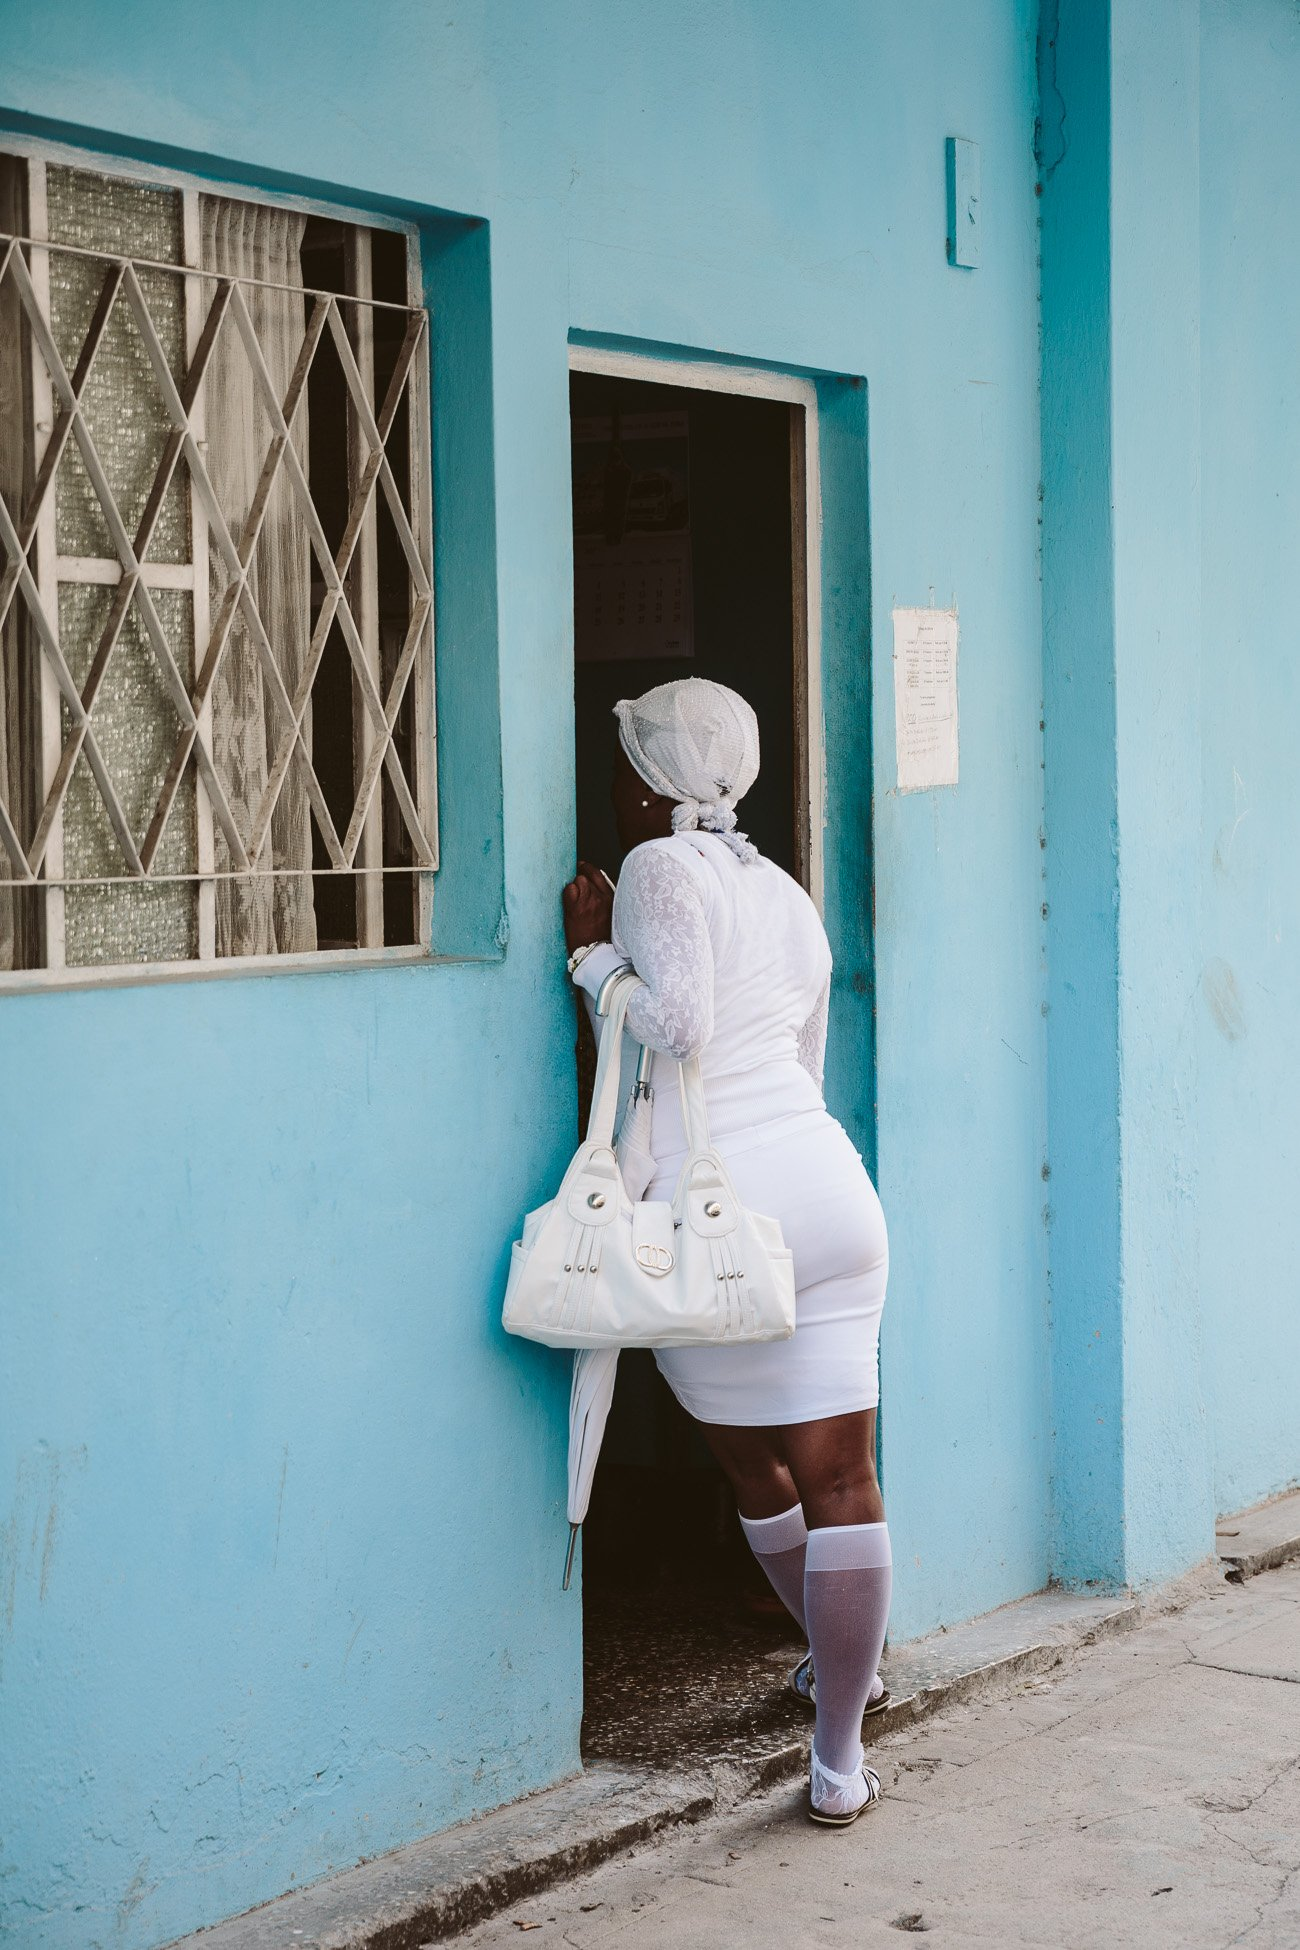 Girl dressed in white standing in street in Havana Cuba